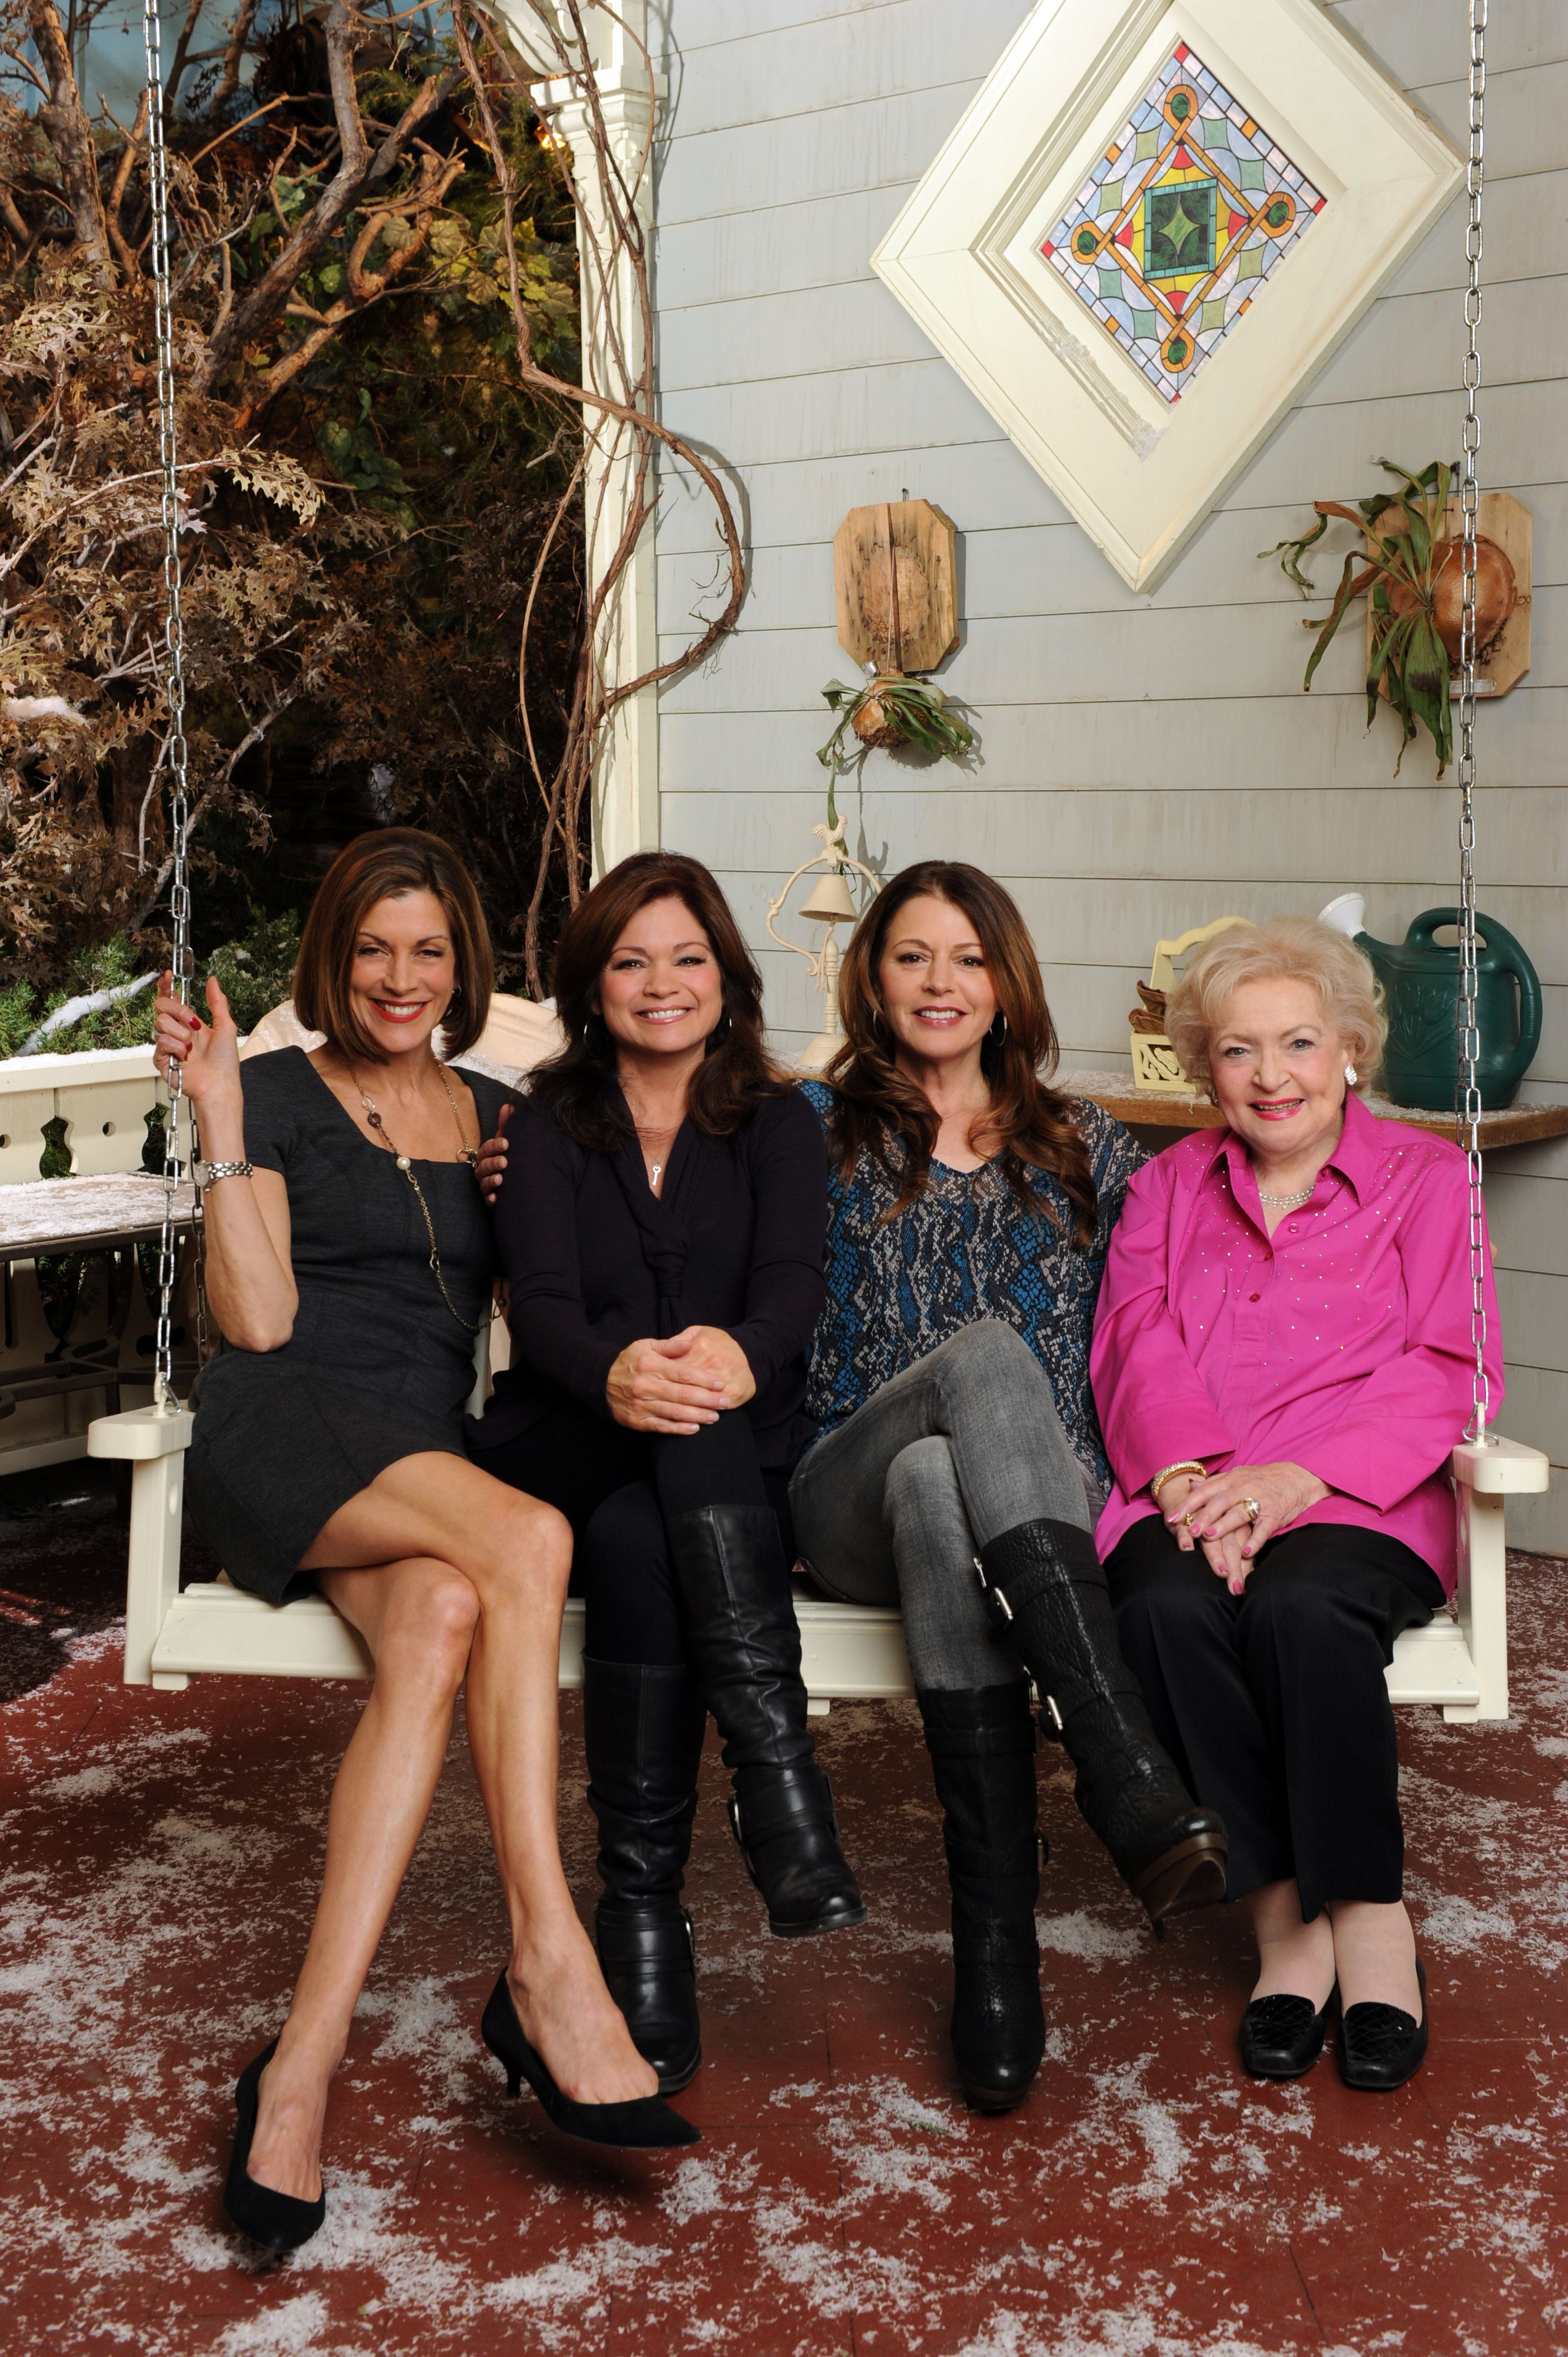 Hot In Cleveland 2010 A Tv Land Original Sitcom Starring Wendie Malick Valerie Bertinelli Jane Leeves And B Jane Leeves Wendie Malick Valerie Bertinelli